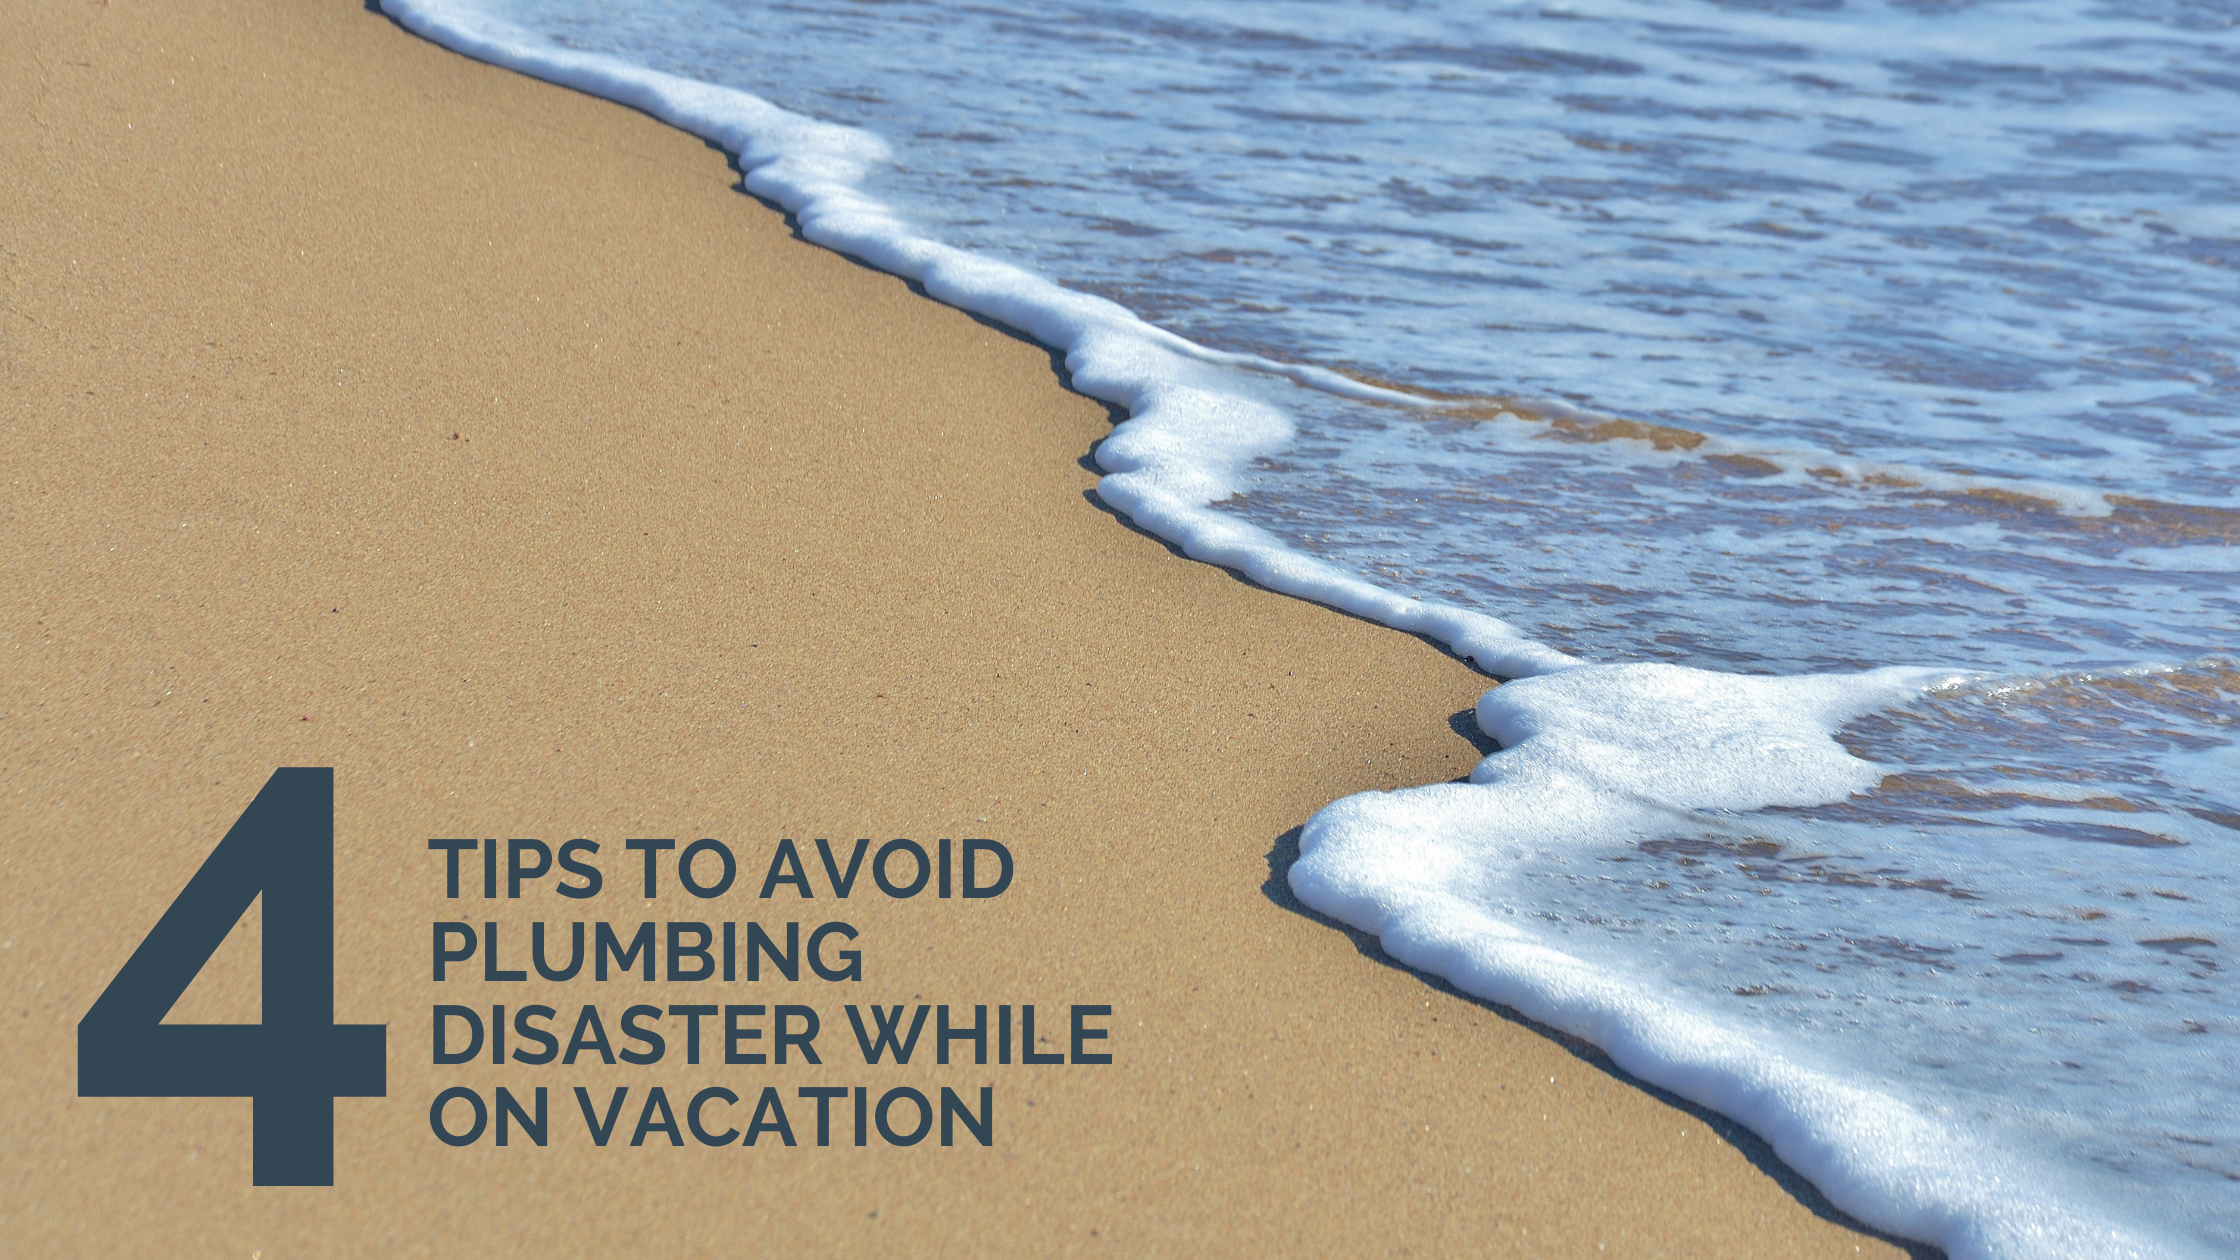 4 Tips to Avoid Plumbing Disaster While on Vacation